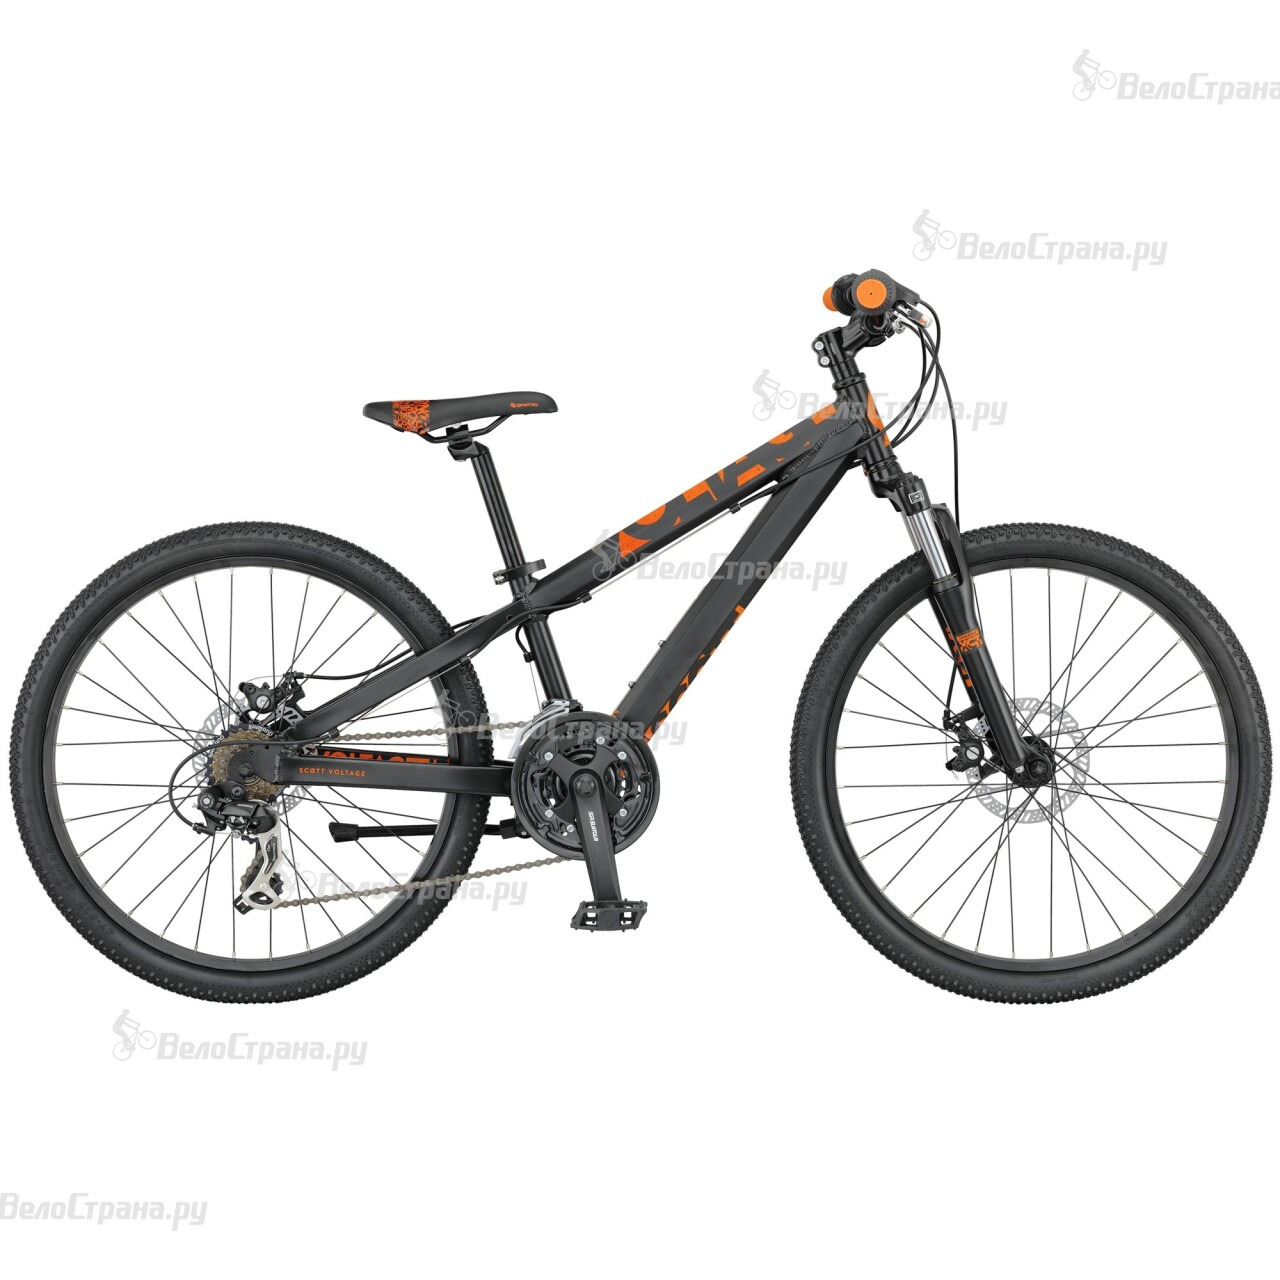 Велосипед Scott Voltage Junior 24 Disc (2016) велосипед scott voltage junior 24 disc 24 2016